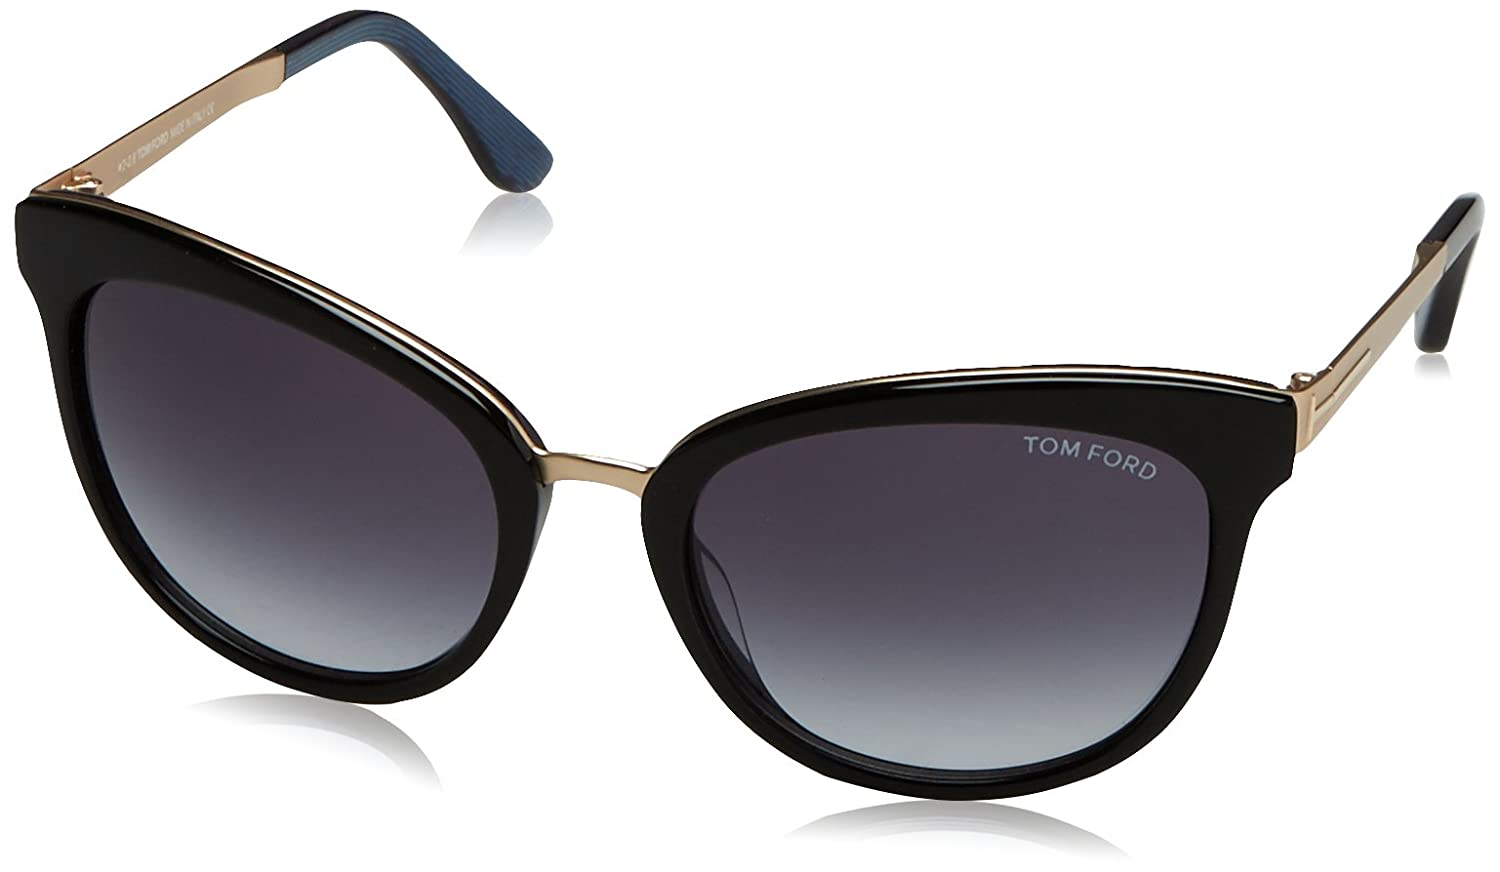 Tom Ford Sonnenbrille Emma (FT0461) Tom Ford FT0461 59B 56 Montures de Lunettes Femme (Beige/Altro/Fumo Grad) FT0461 SUNGLASS MET